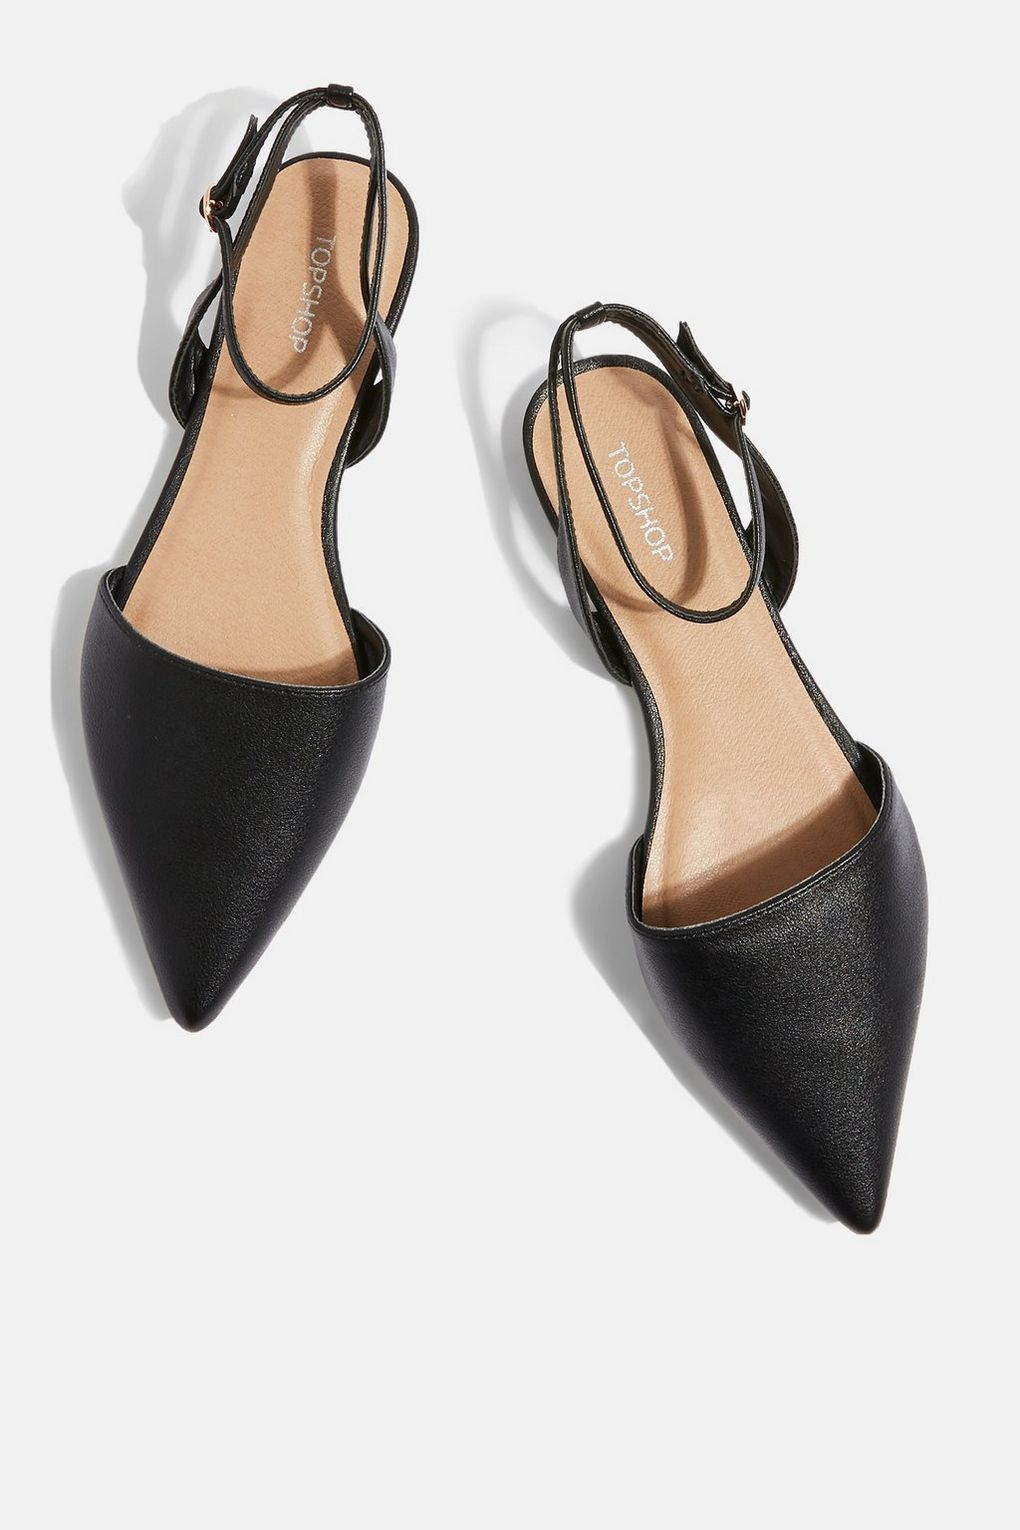 Business Casual Topshop, $32 SHOP IT Time to upgrade your standard black flats.